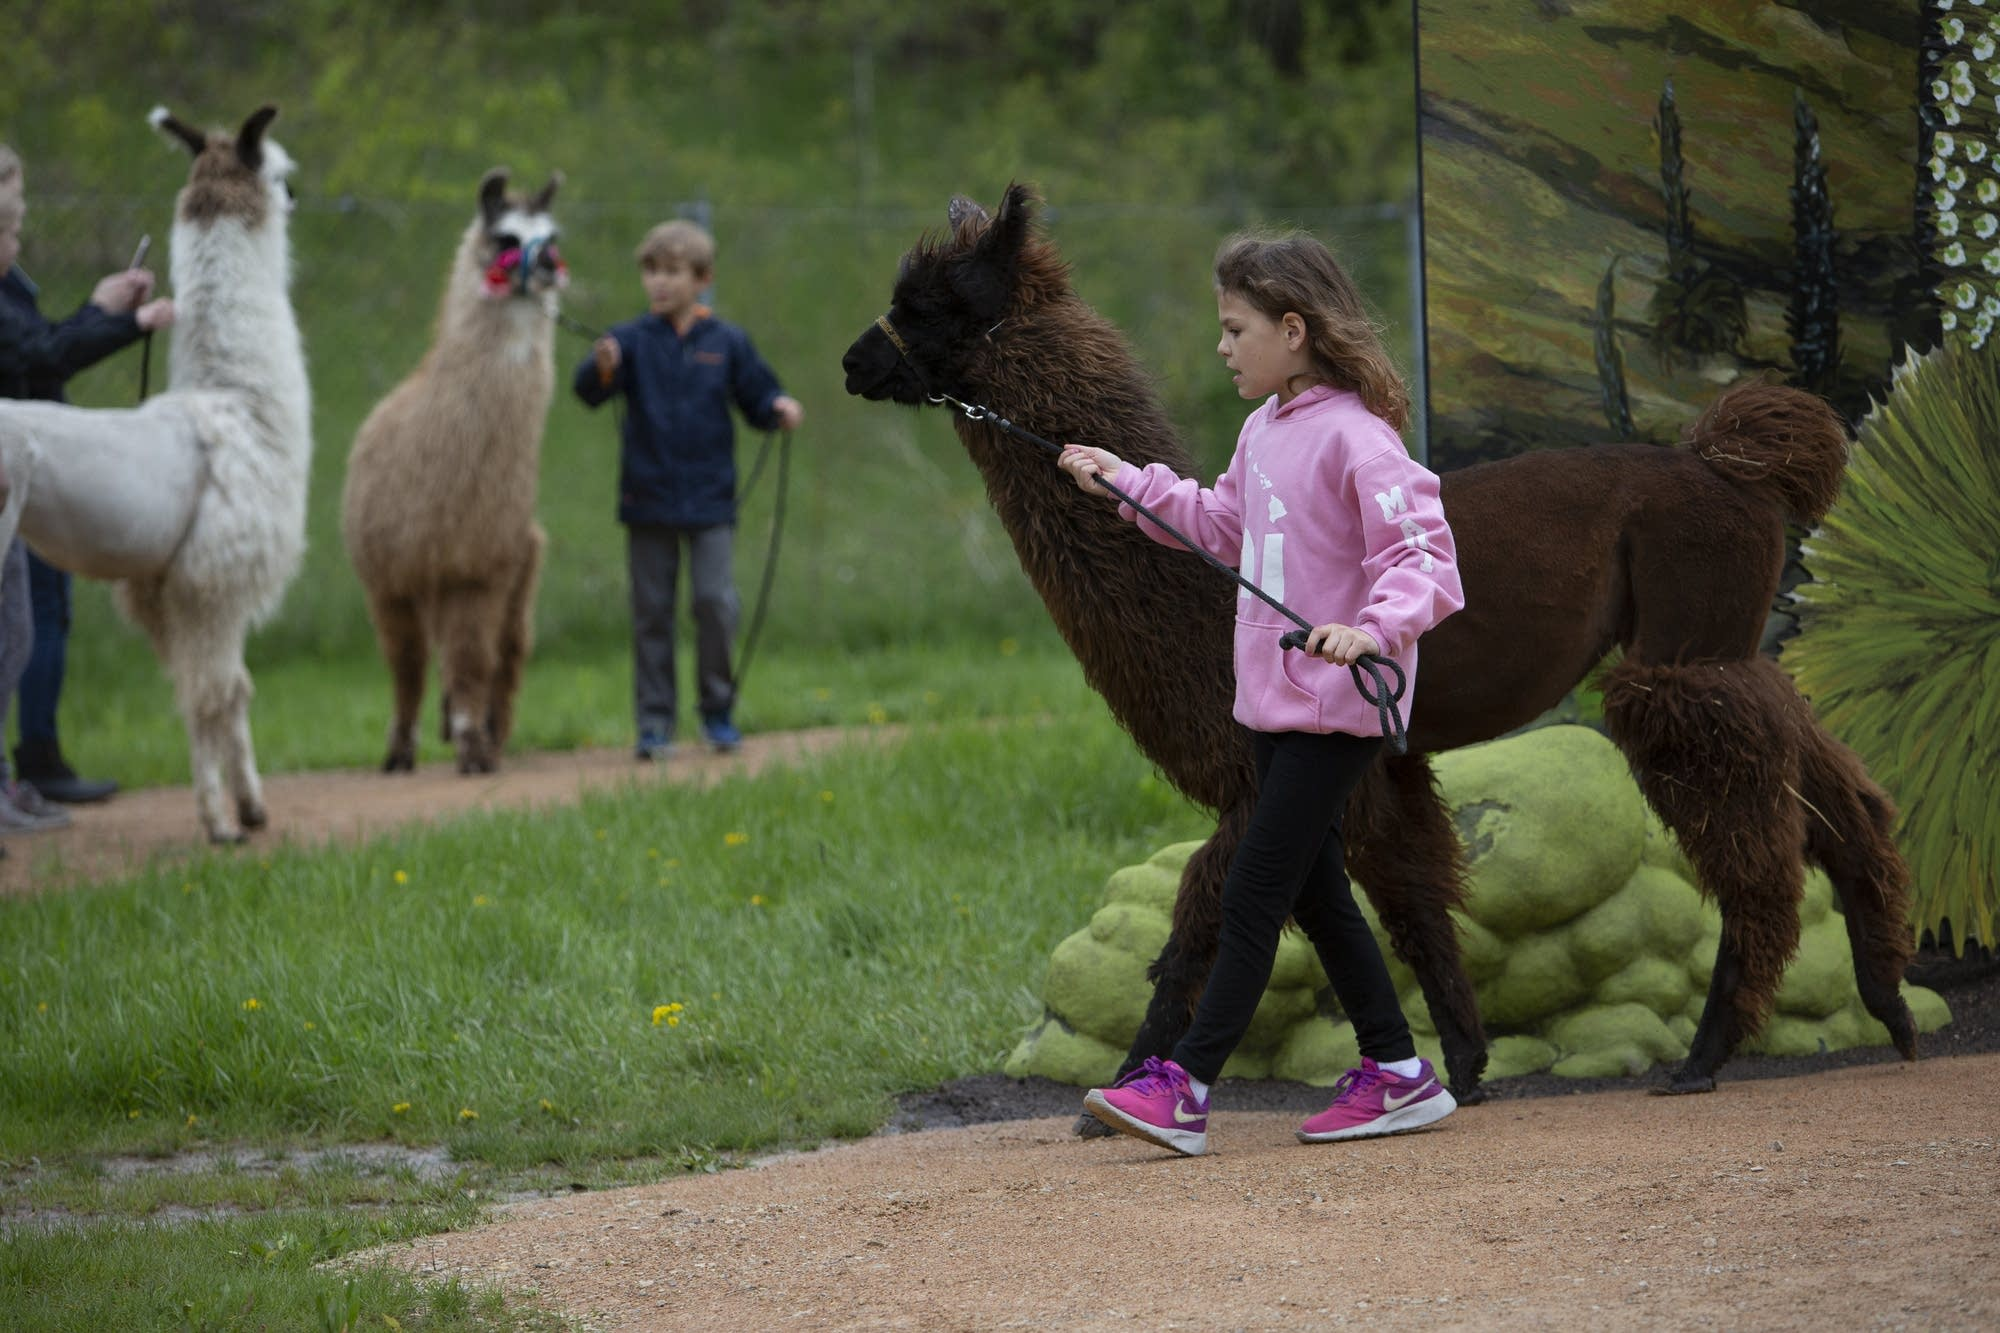 Kristen Strohsack, 9, of the Carver County 4H walks a llama.